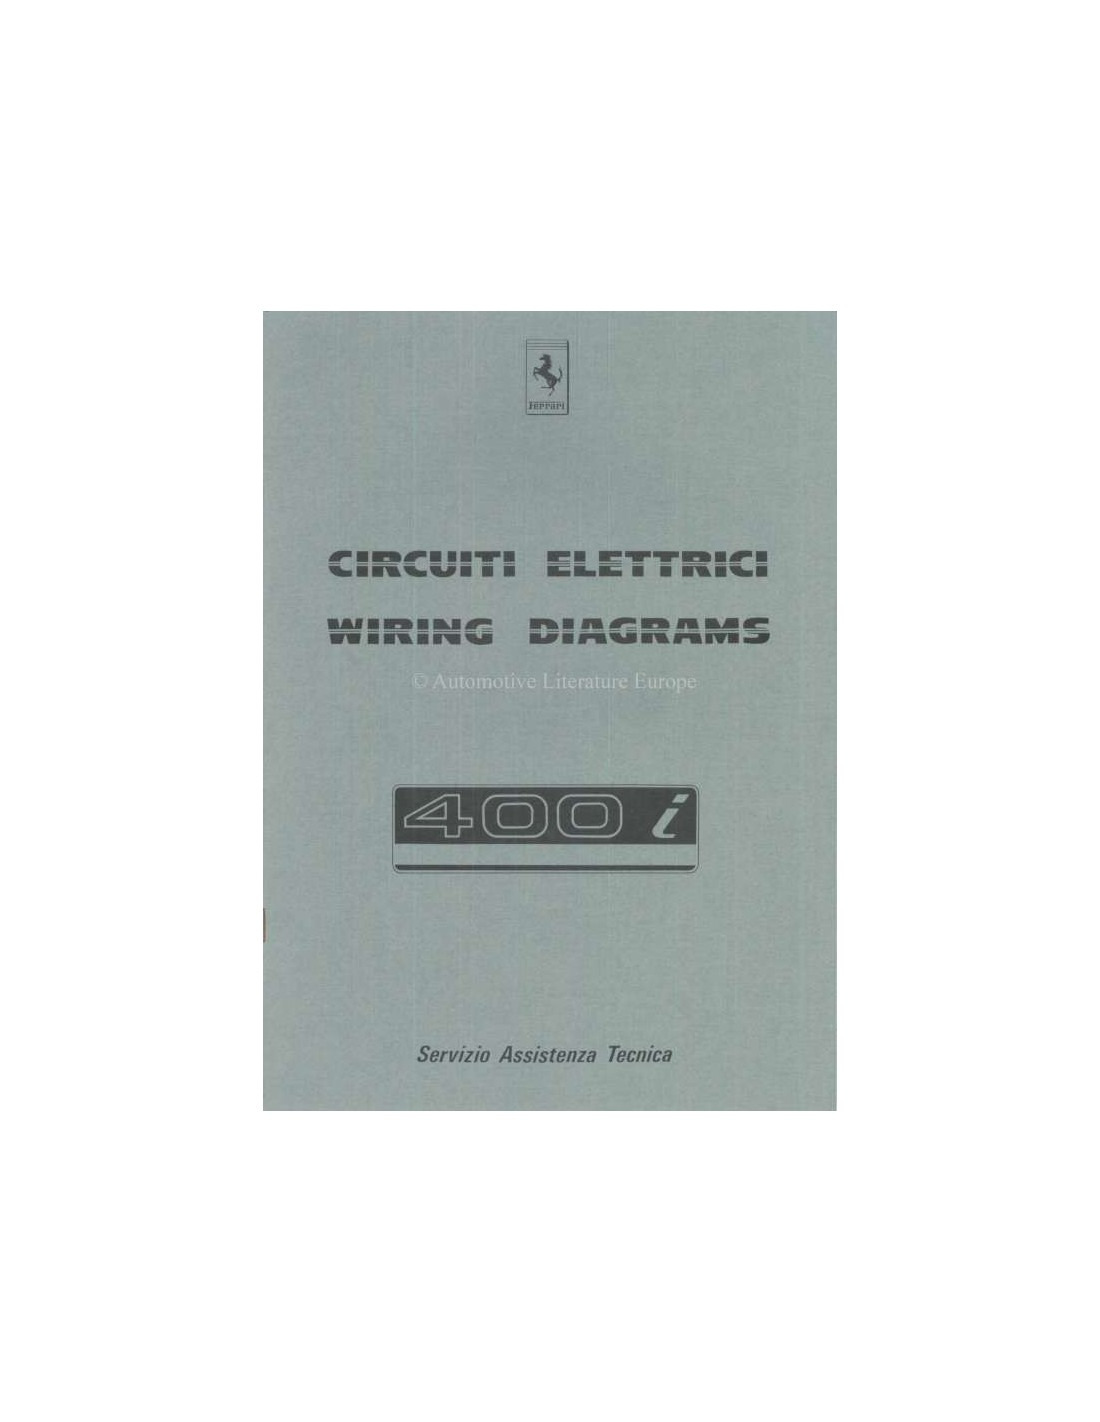 1983 ferrari 400i wiring diagram repair manual 291 83 ferrari 400i wiring diagram repair manual 291 83 ferrari 400i wiring diagram at edmiracle.co